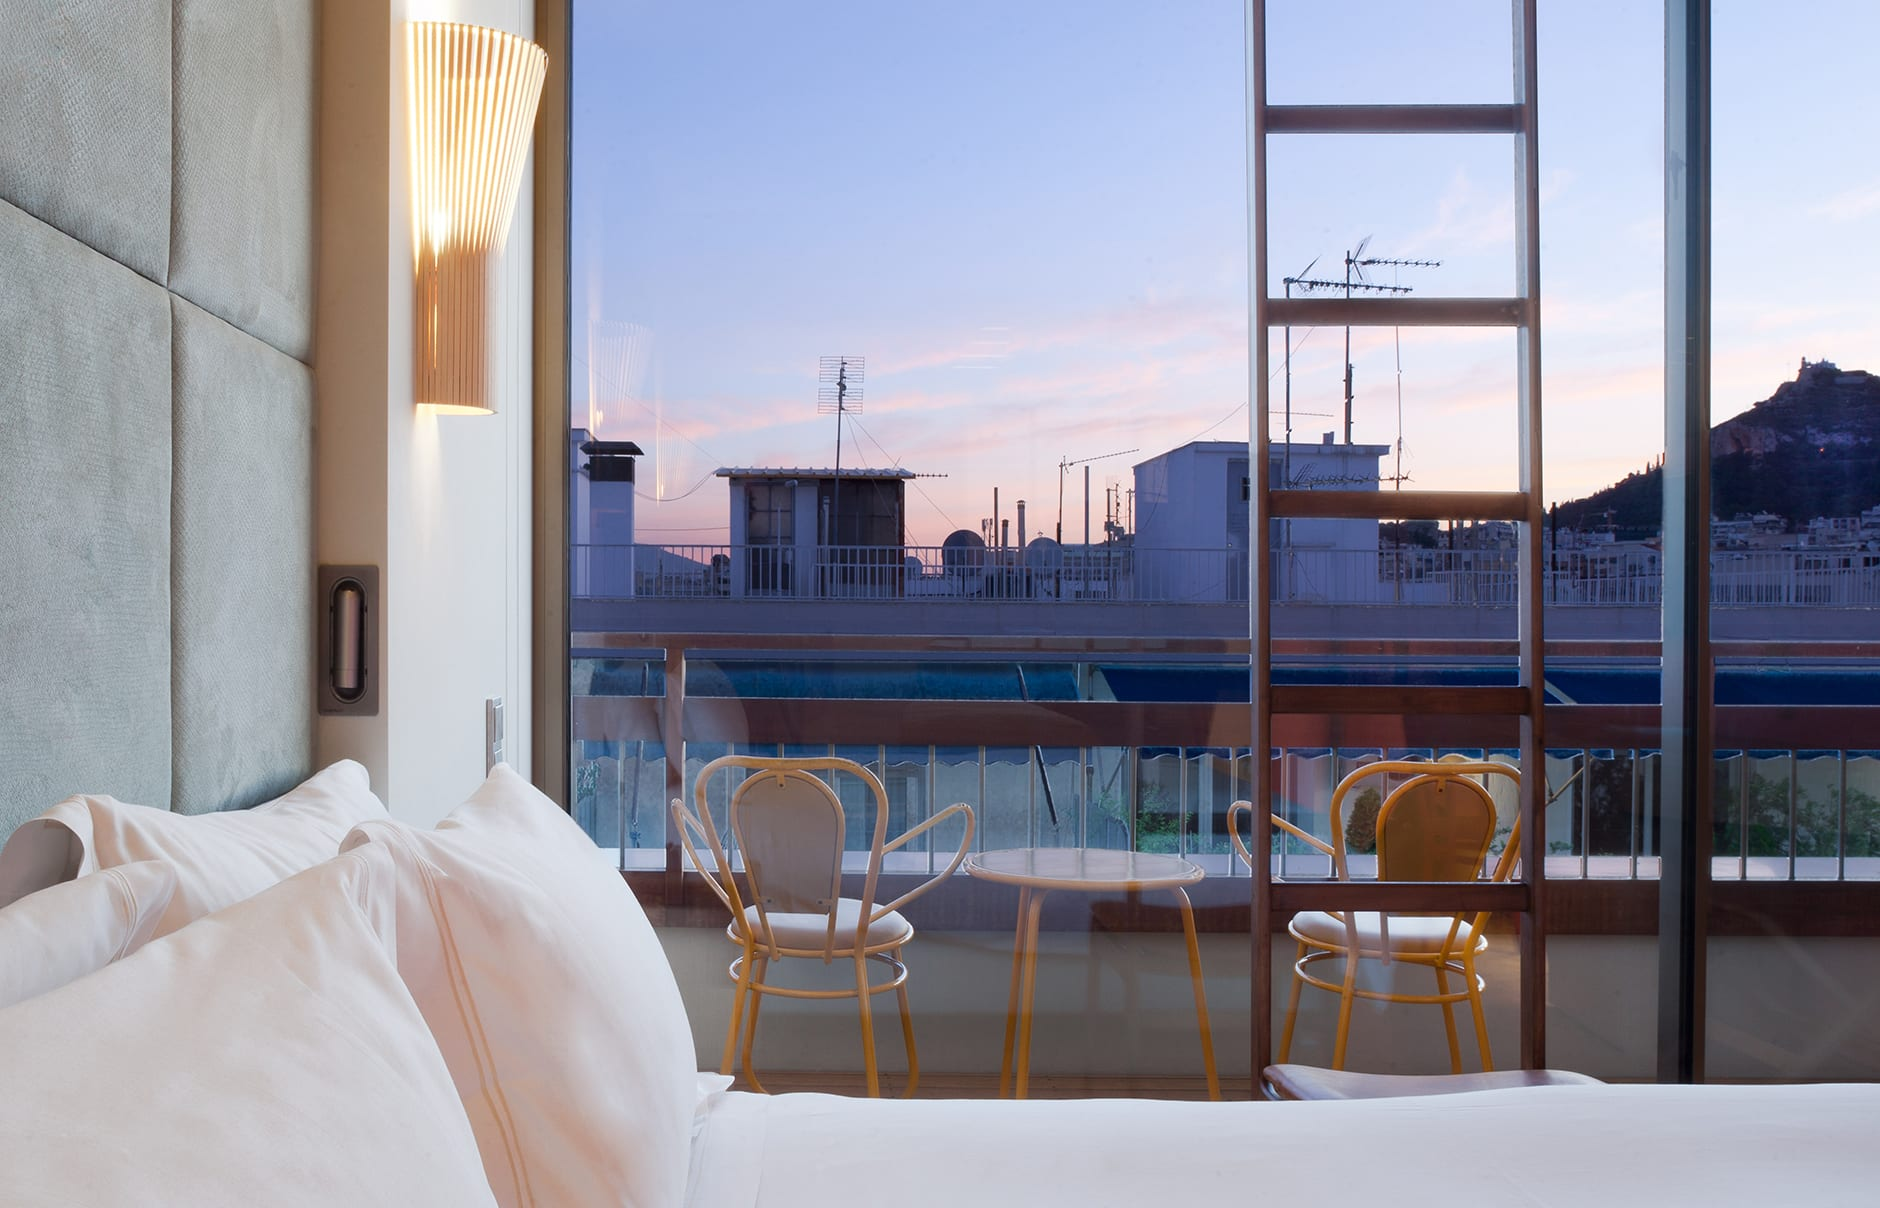 New Hotel, Athens, Greece. Hotel Review by TravelPlusStyle. Photo © New Hotel